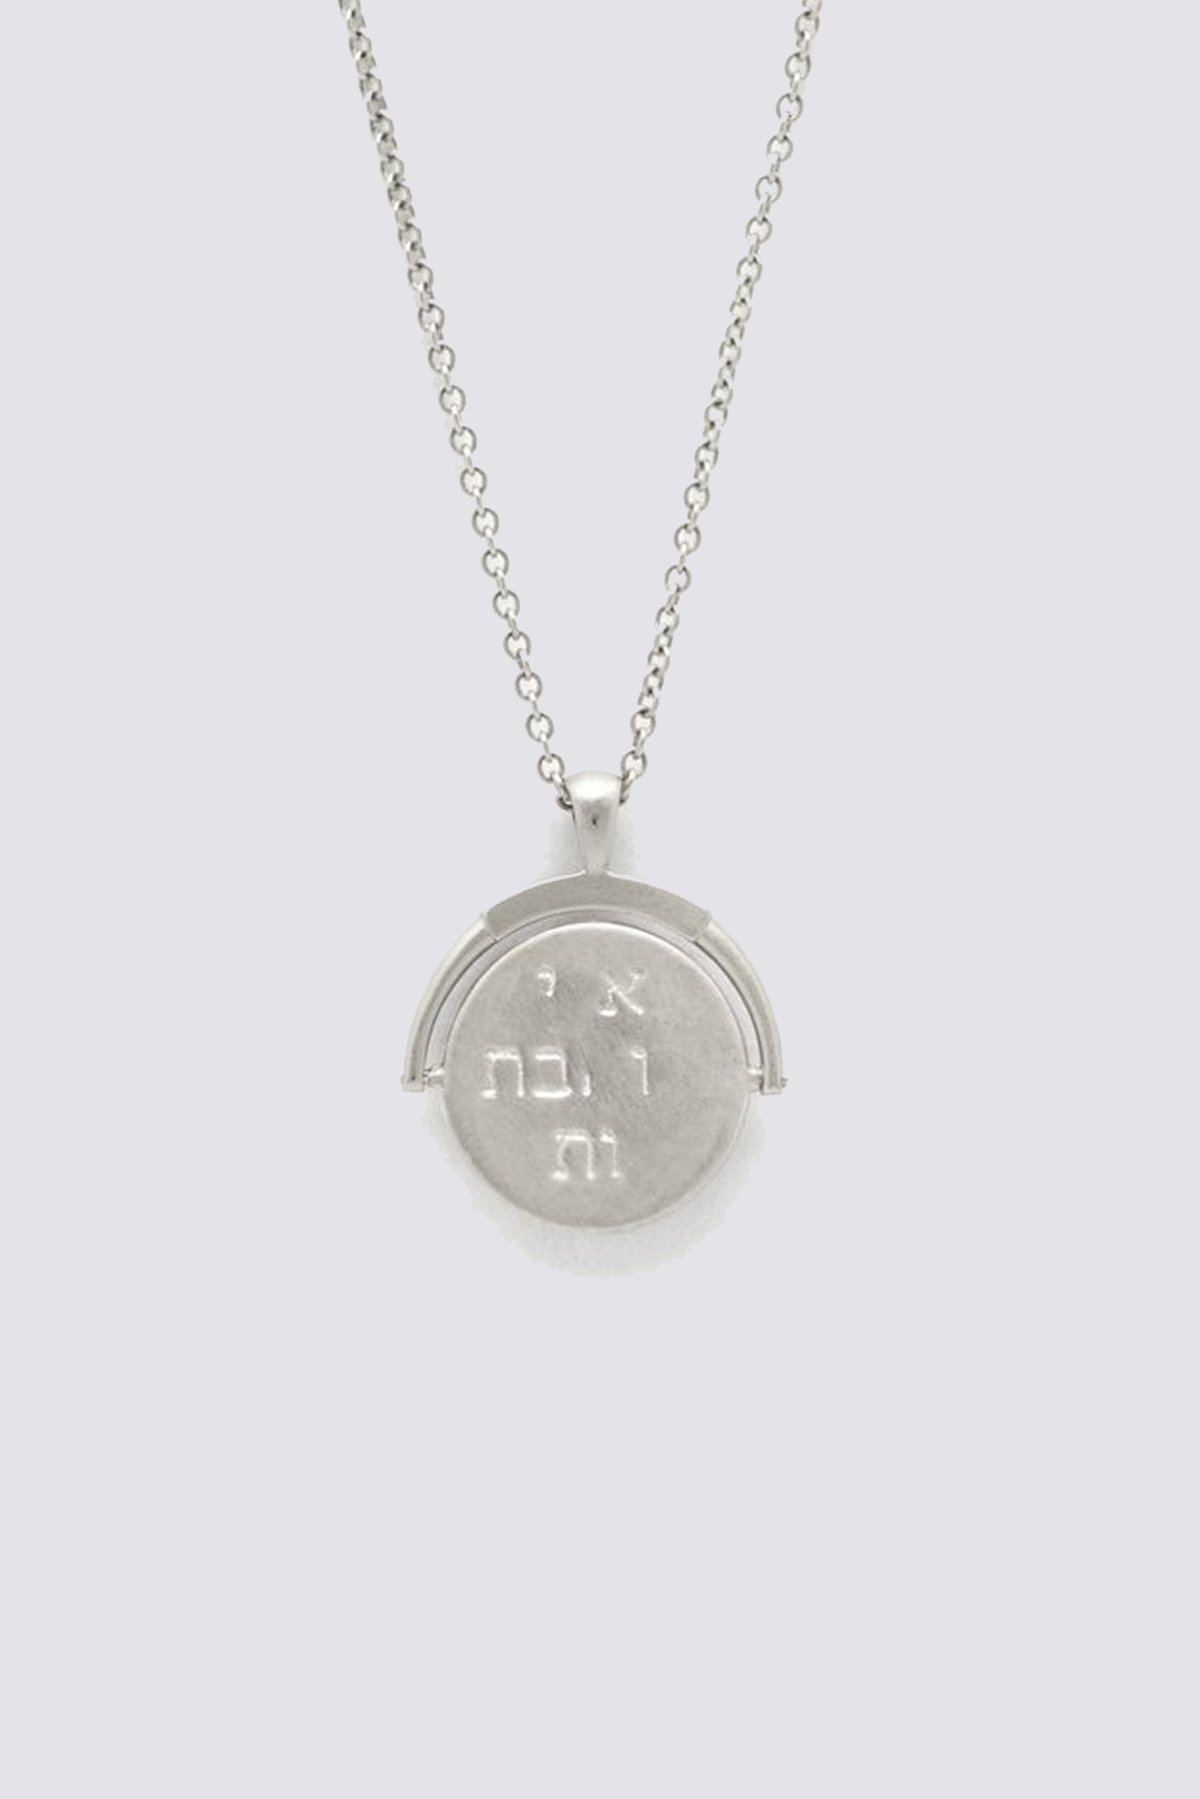 5c7605efde Tony Malmed Jewelry The אני אוהב אותך I Love You Spinner Necklace ...